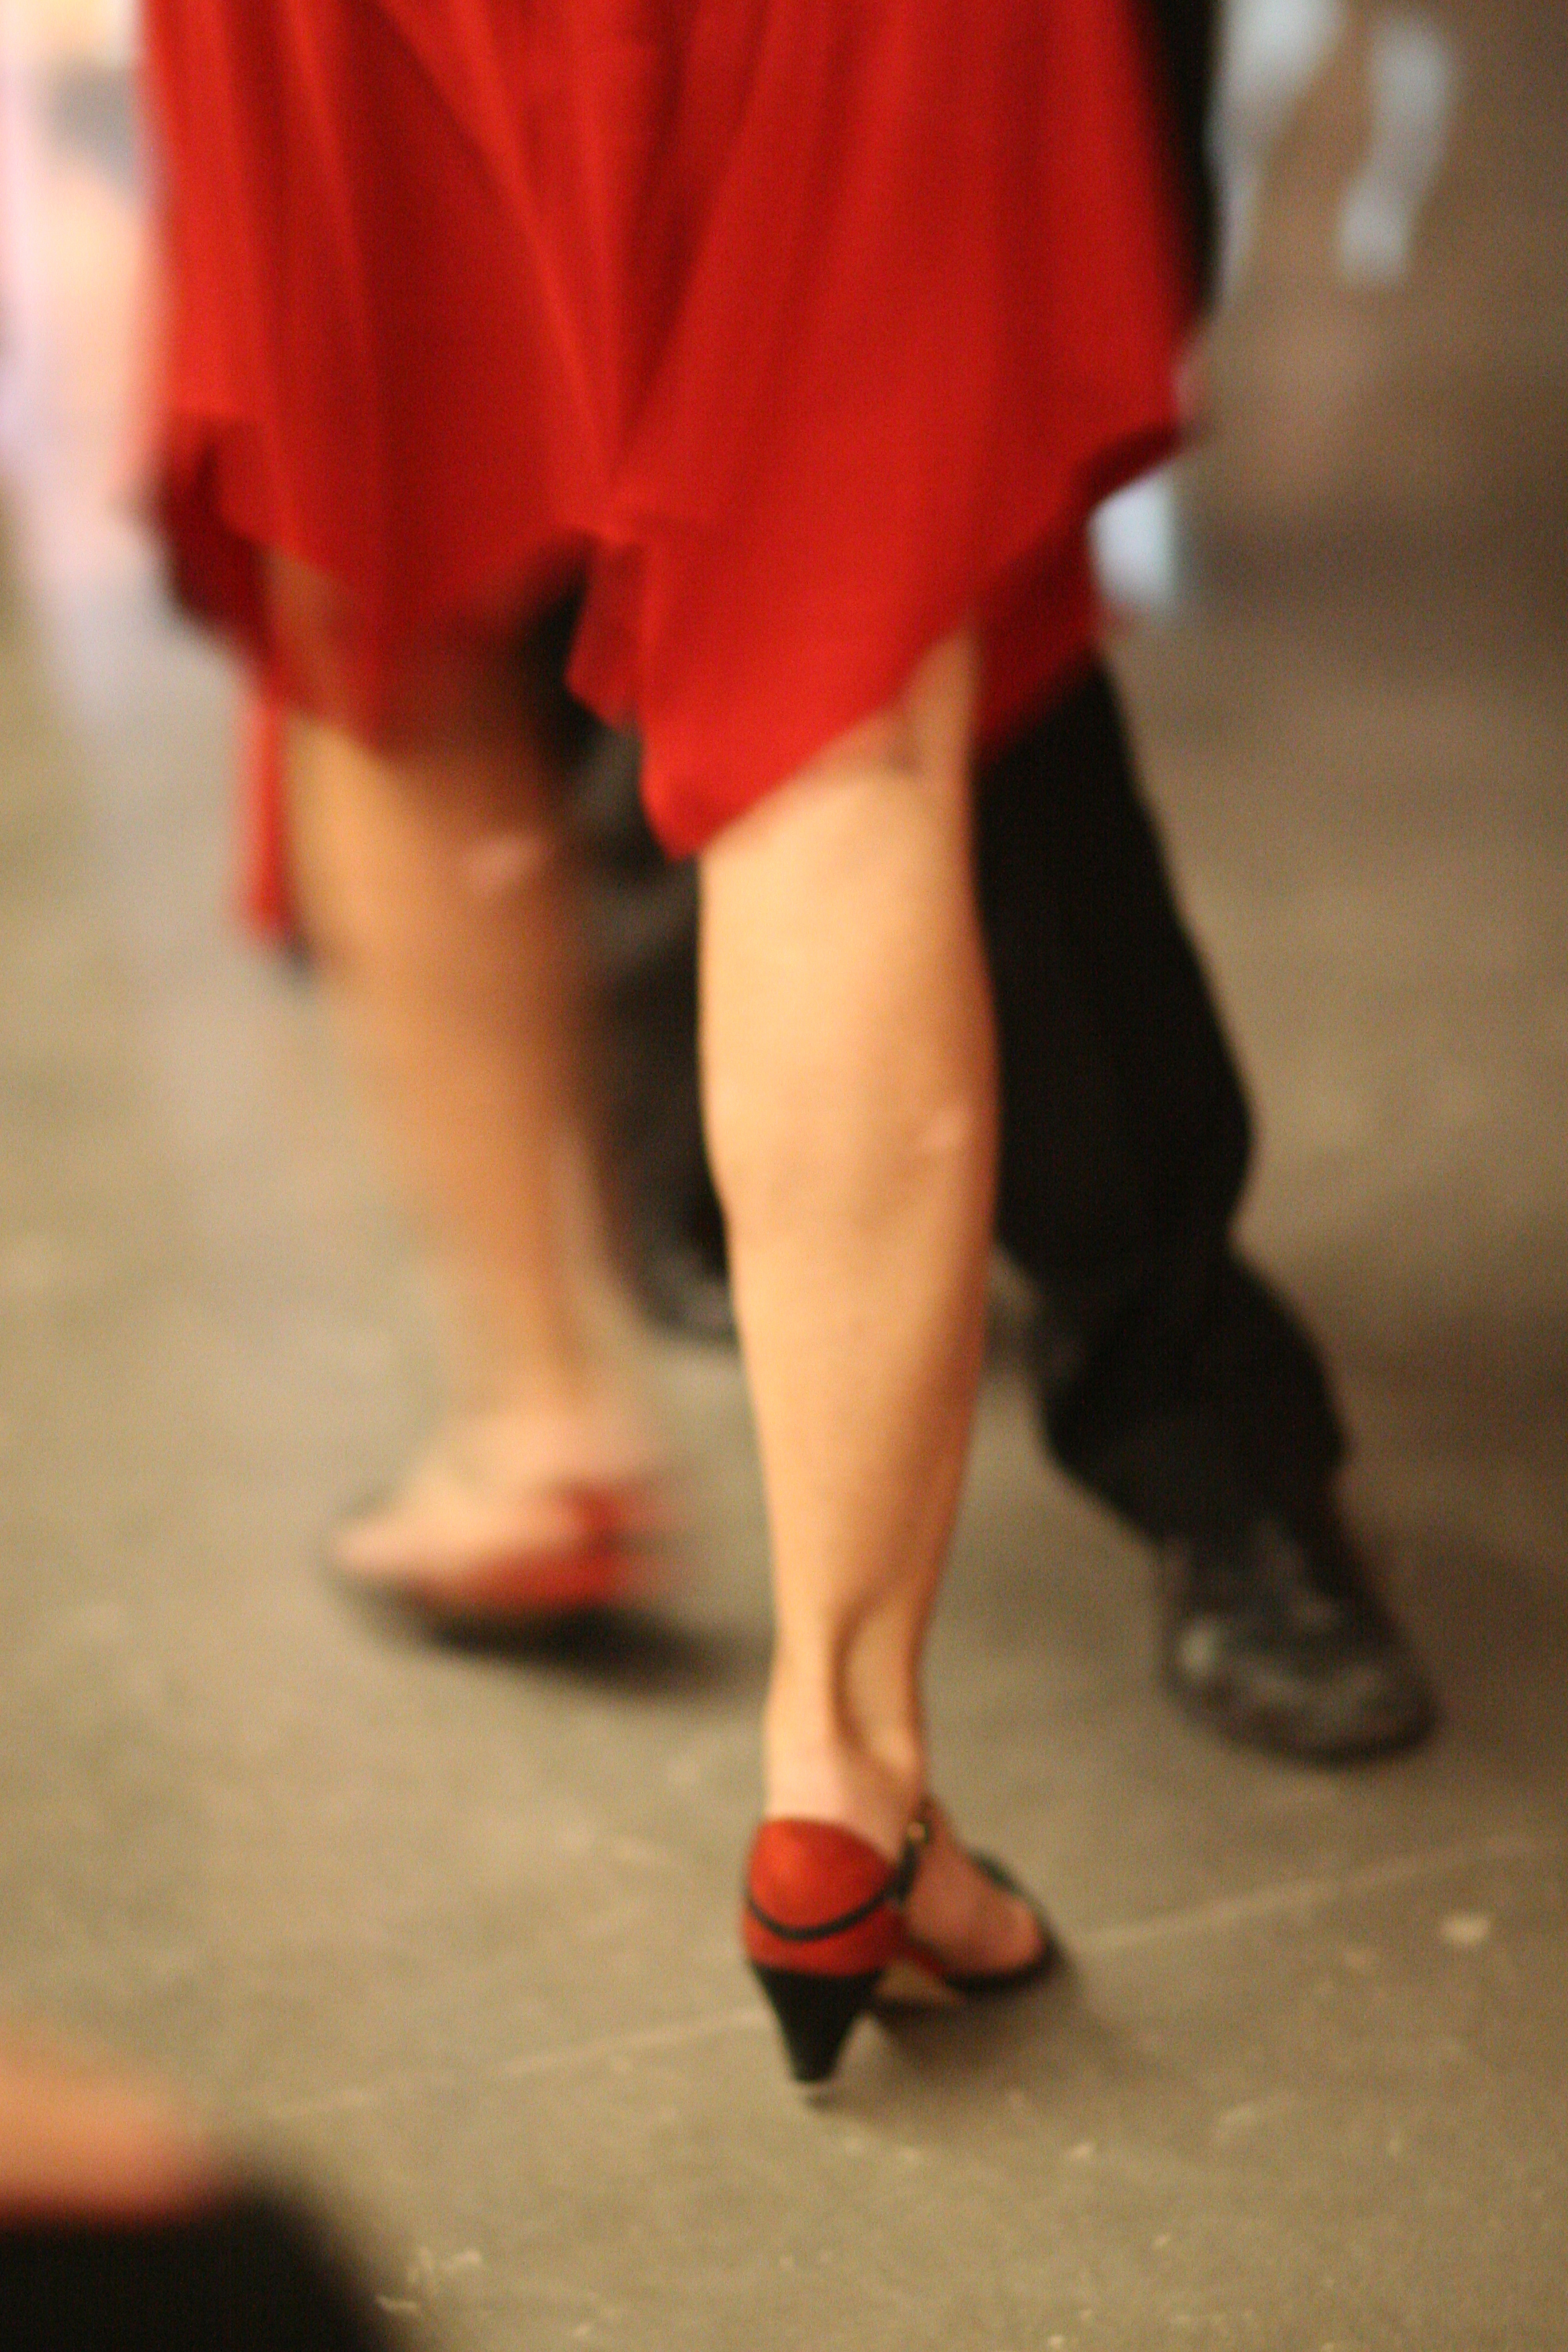 Movement during an Argentine Tango Dance.